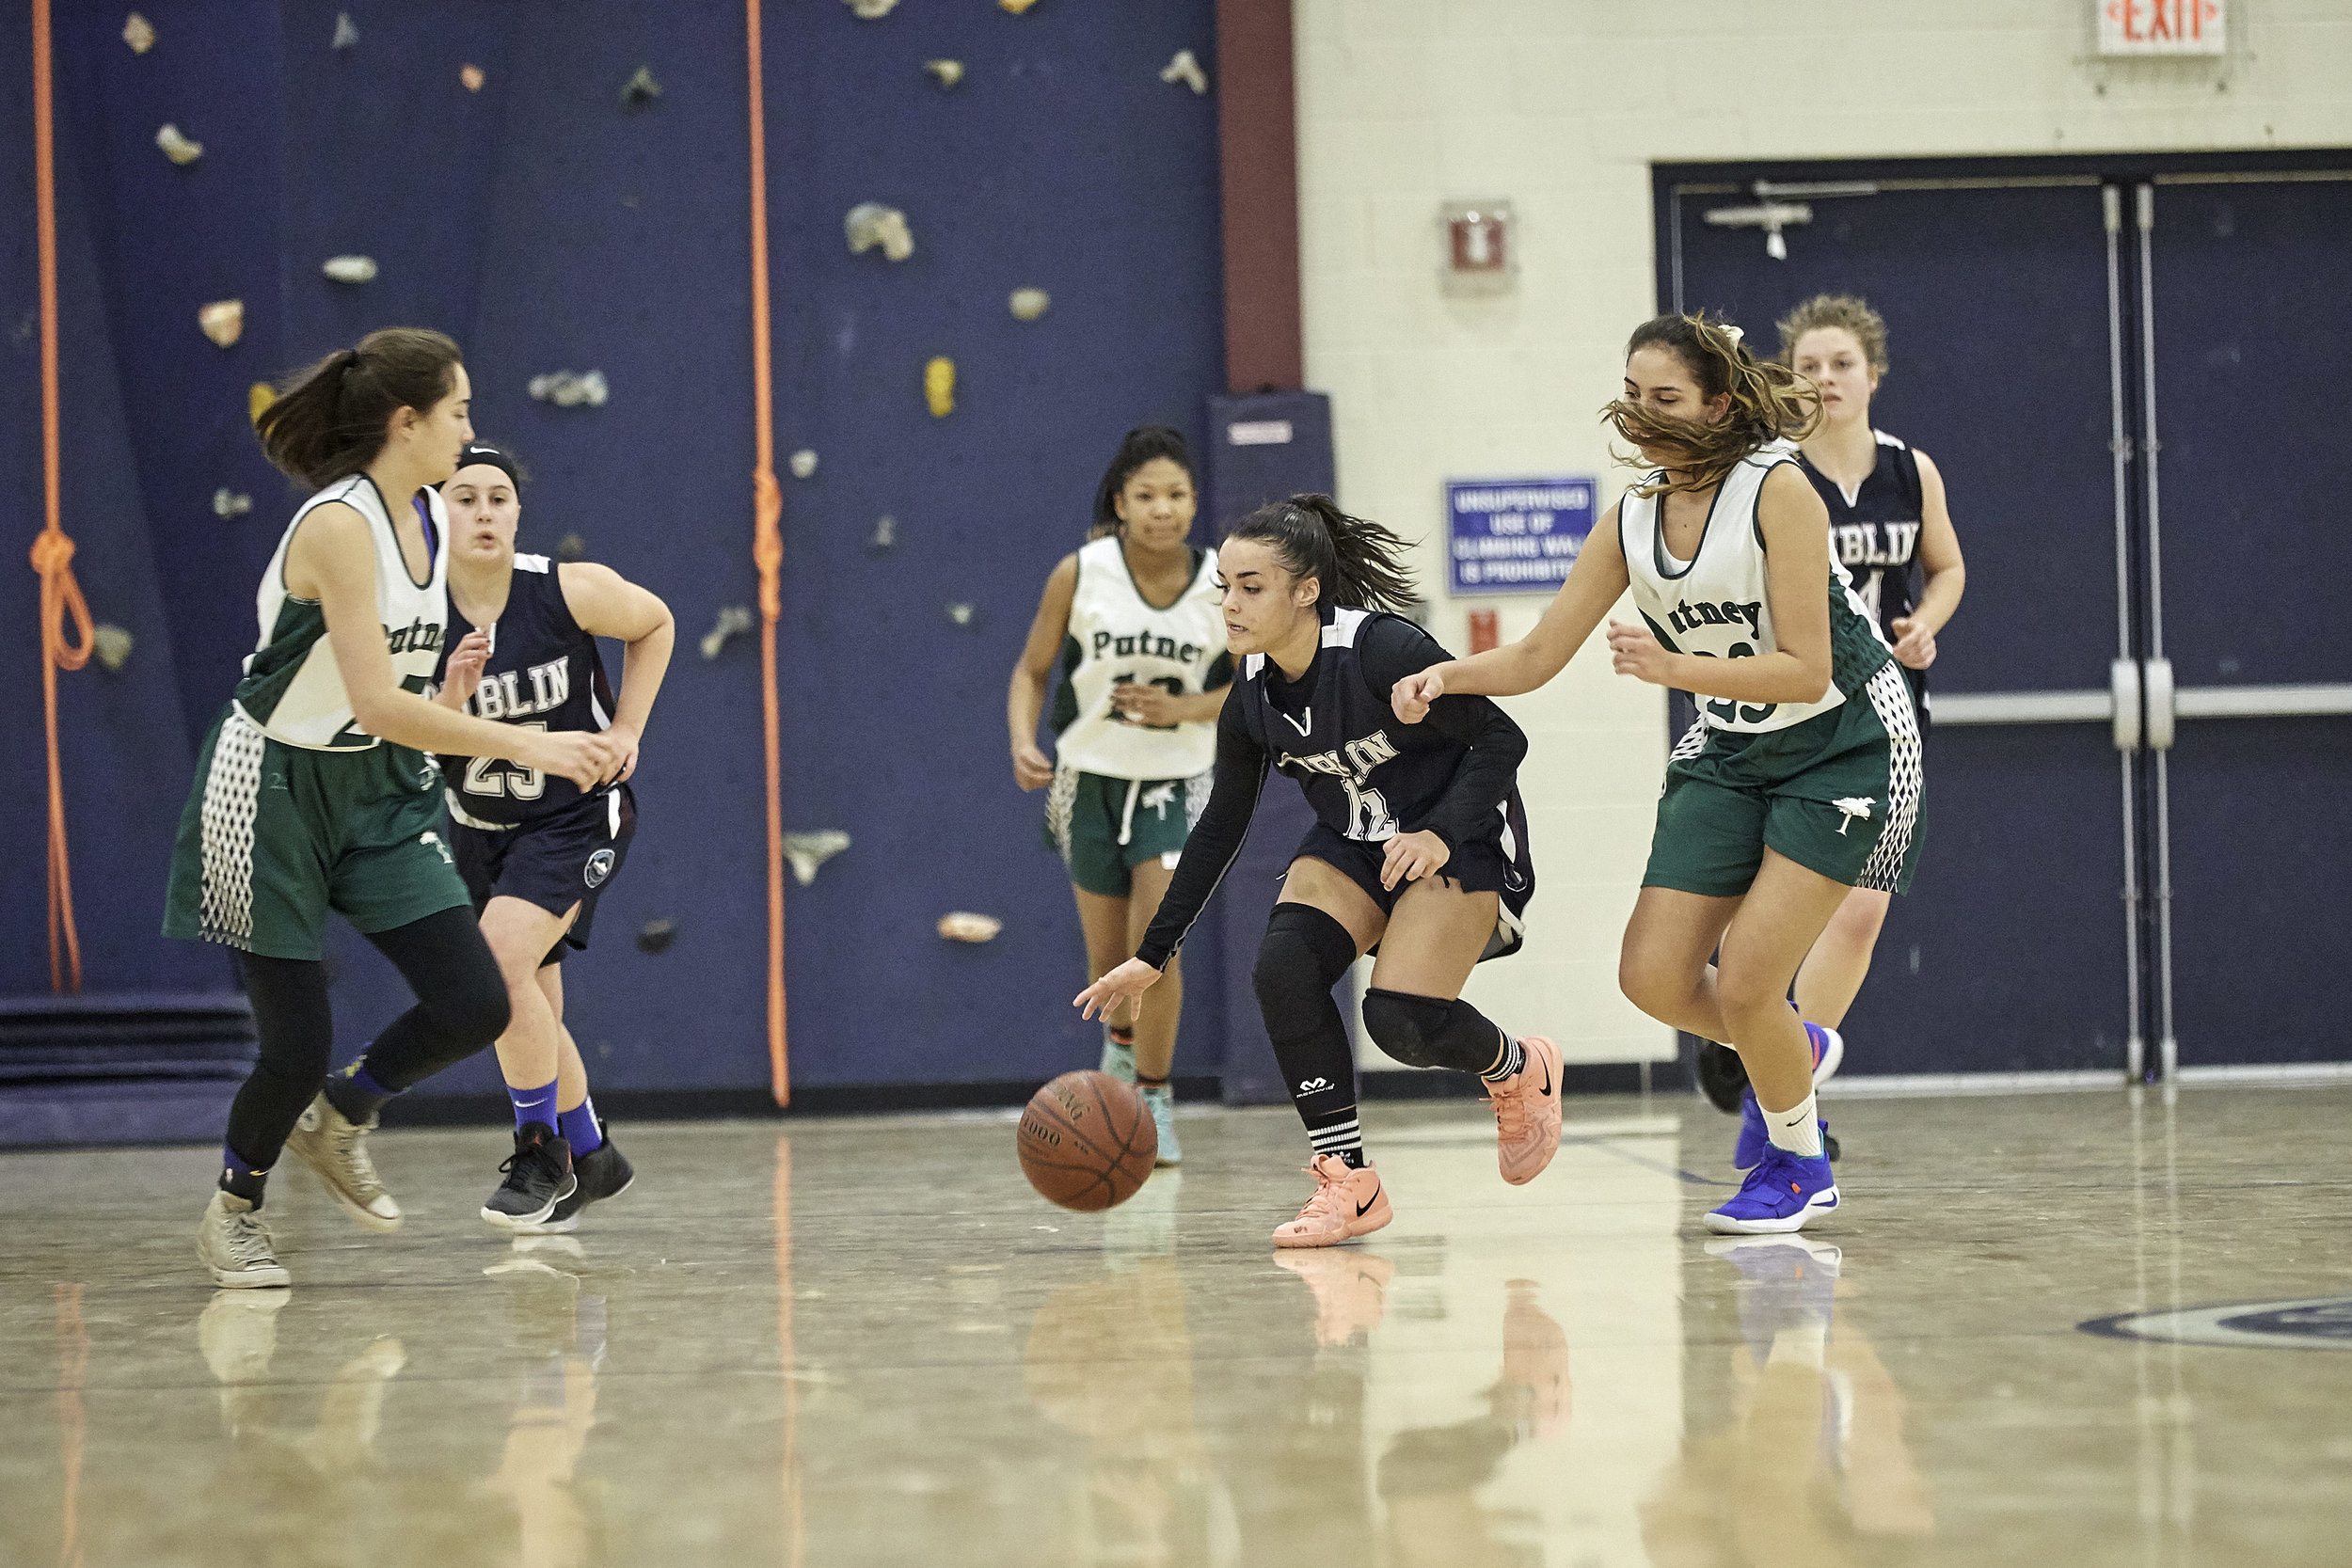 Basketball vs Putney School, February 9, 2019 - 167194.jpg